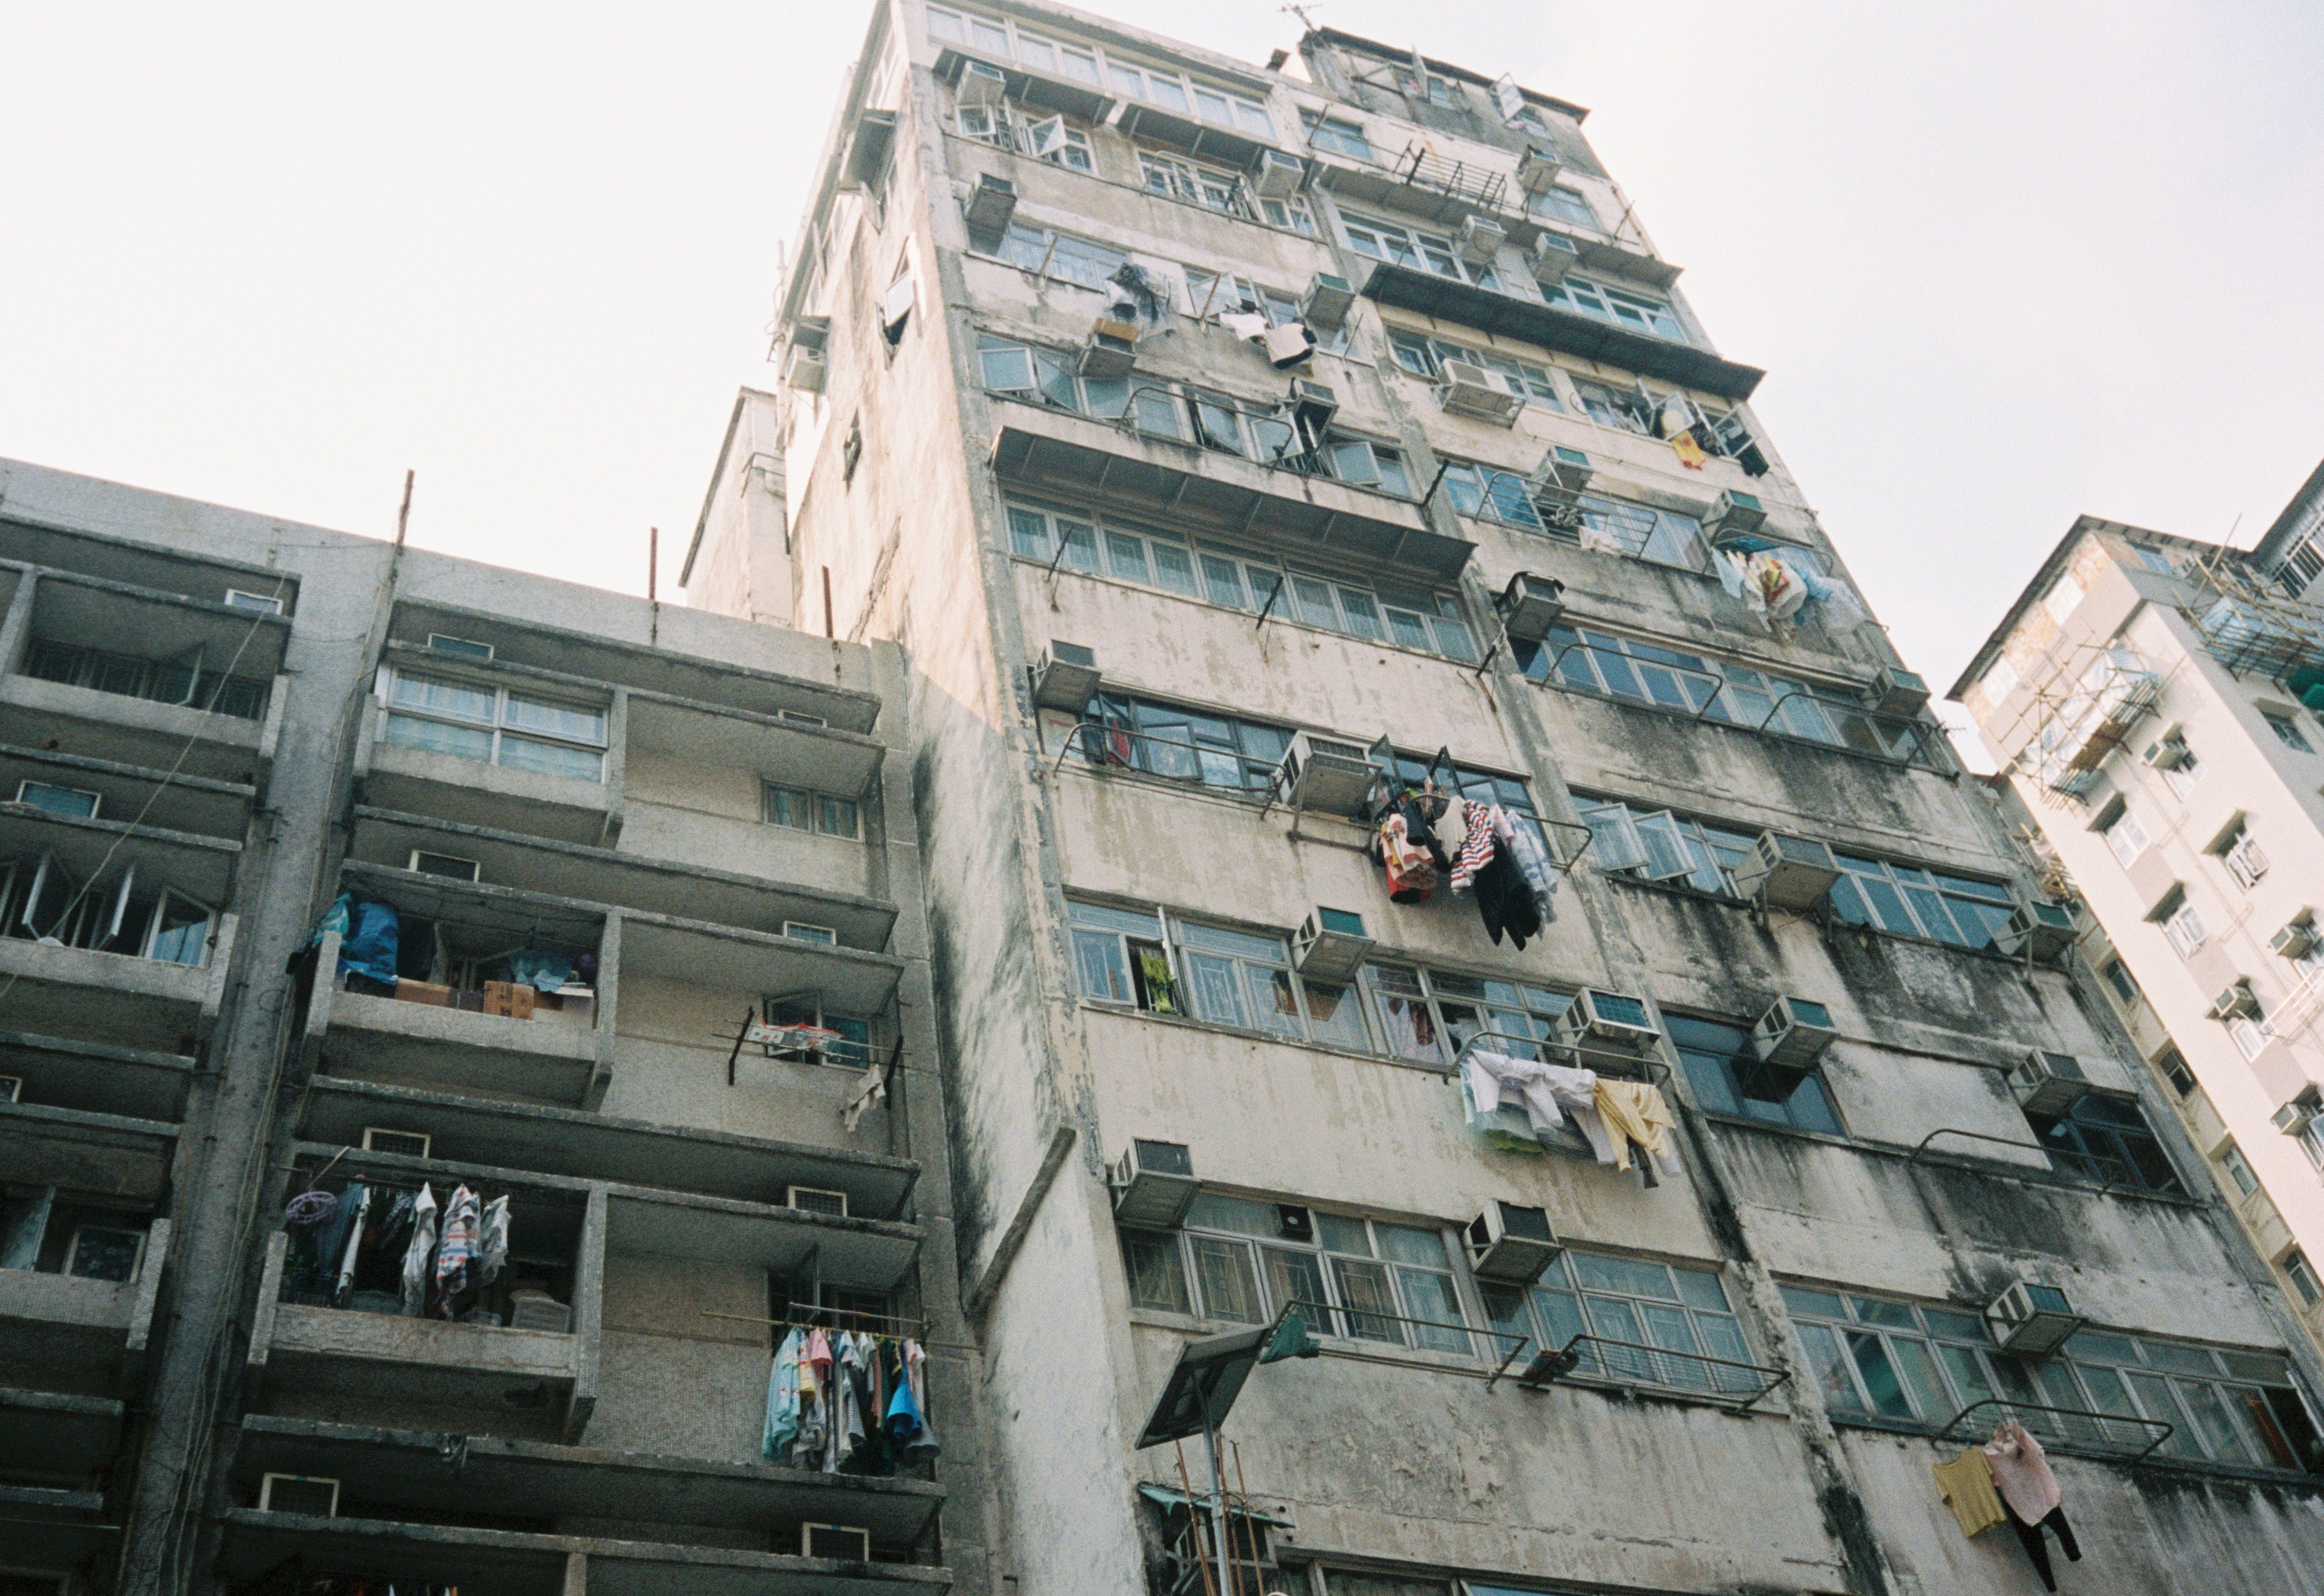 A data-based snapshot of Israel's poor